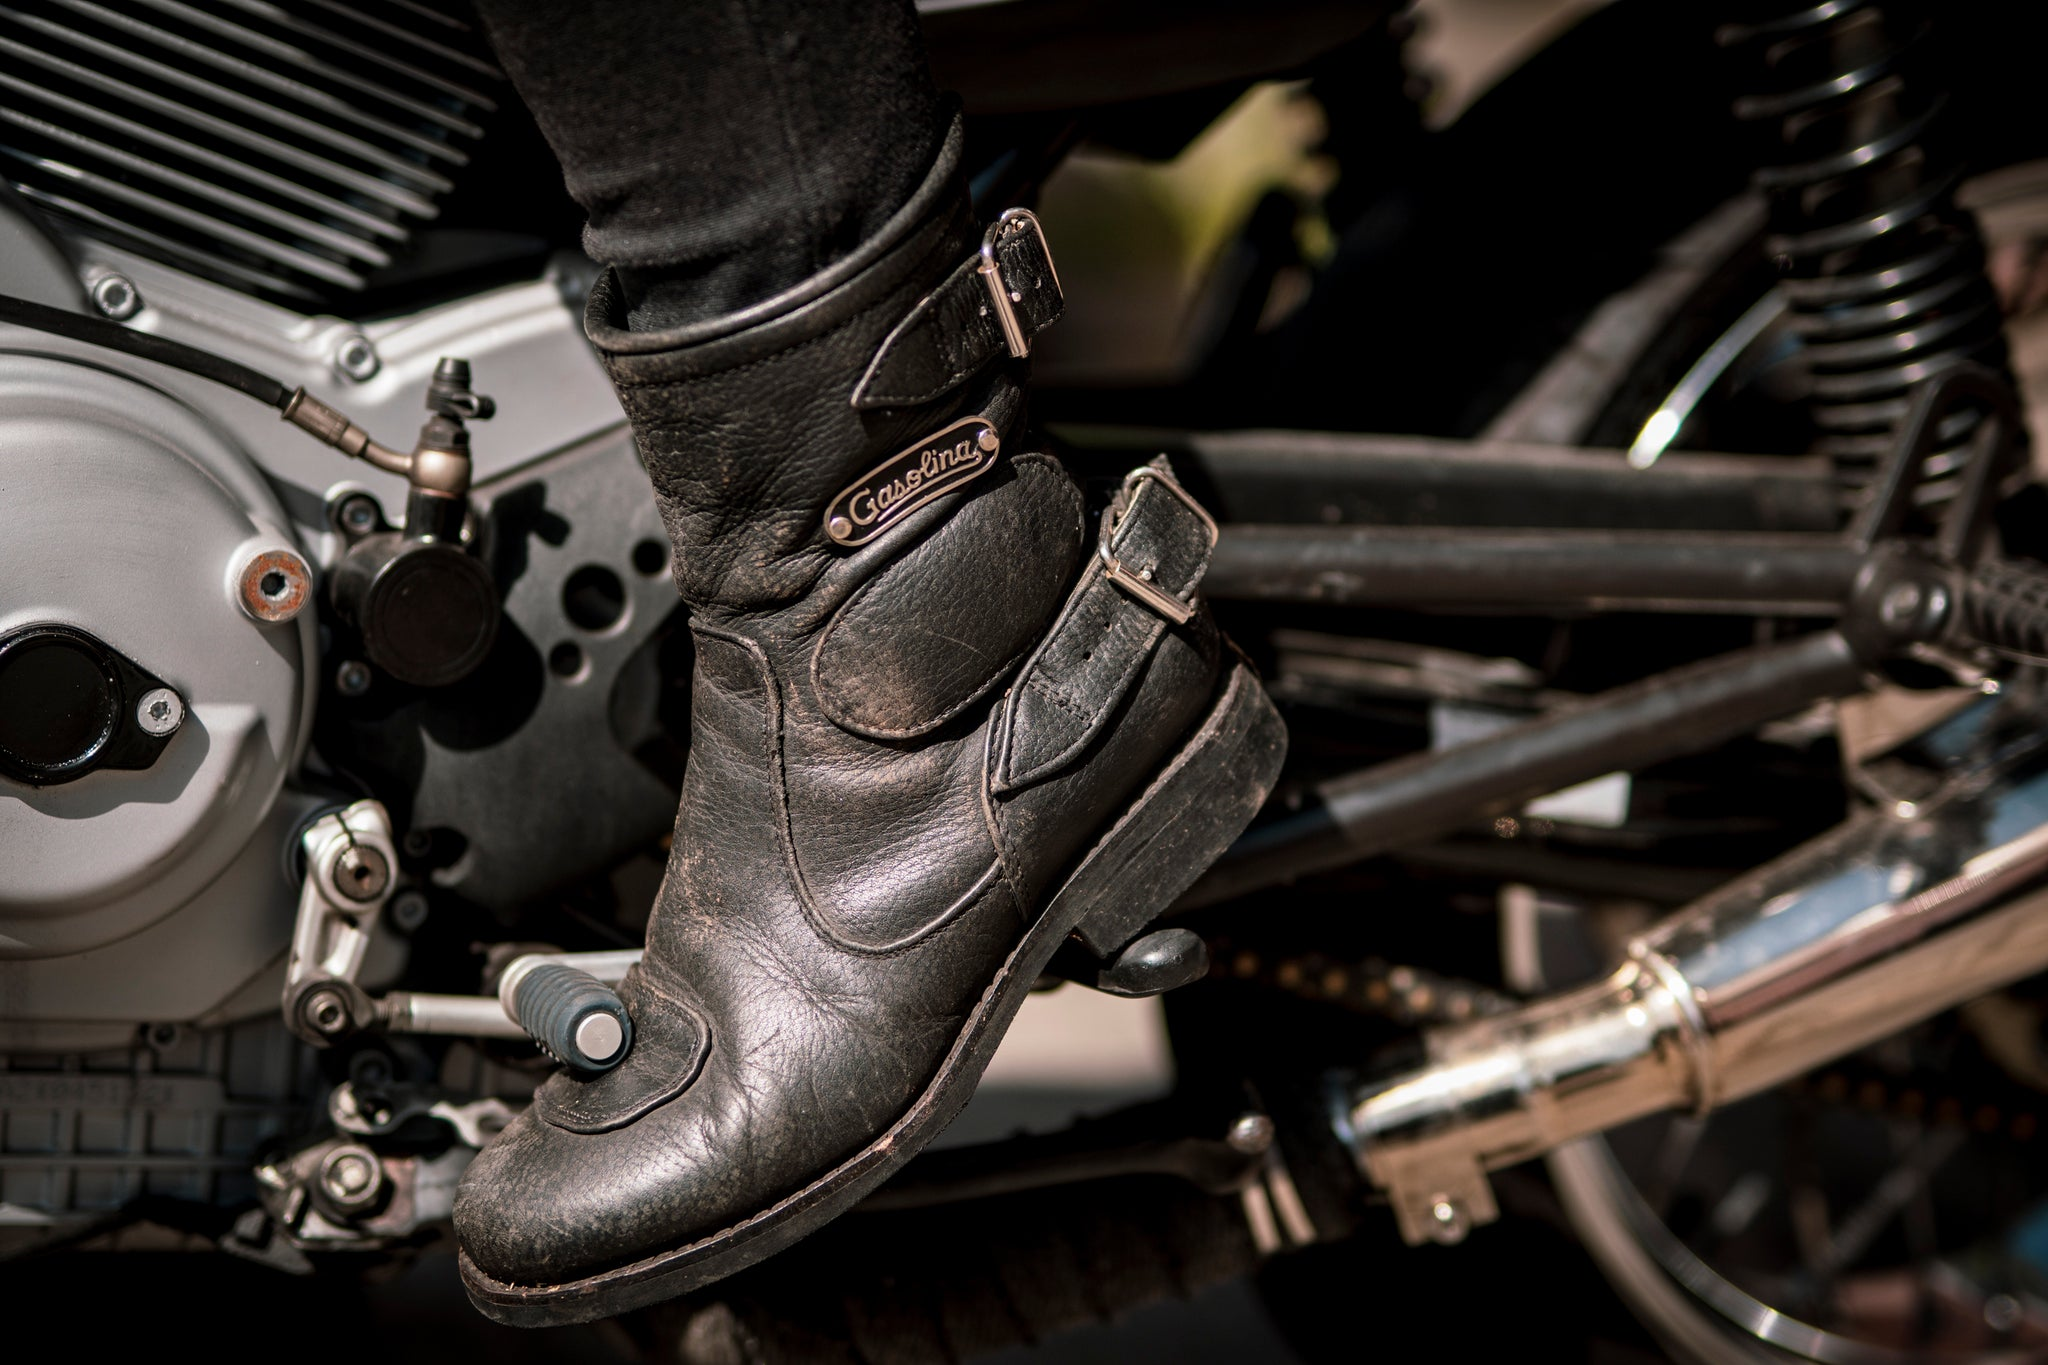 Gasolina Women's Leather Motorcycle Boots at Moto Femmes Online Australia